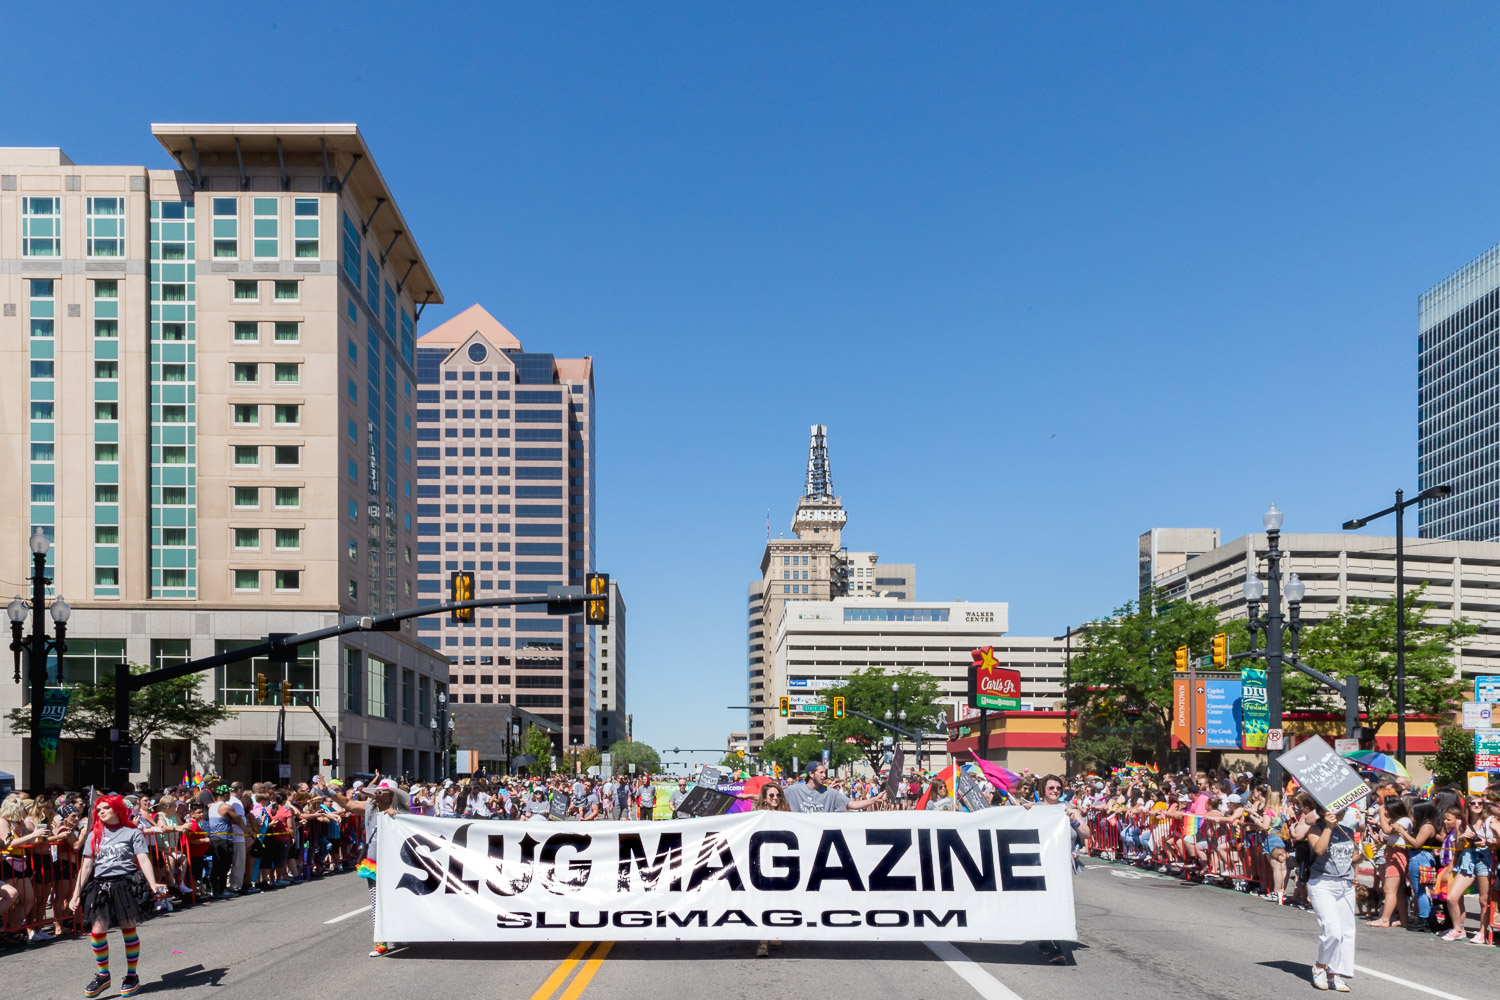 SLC Pride parade makes its way down 200 South , SLUG Magazine crew marching the whole way. Photo: Logan Sorenson | Lmsorenson.net